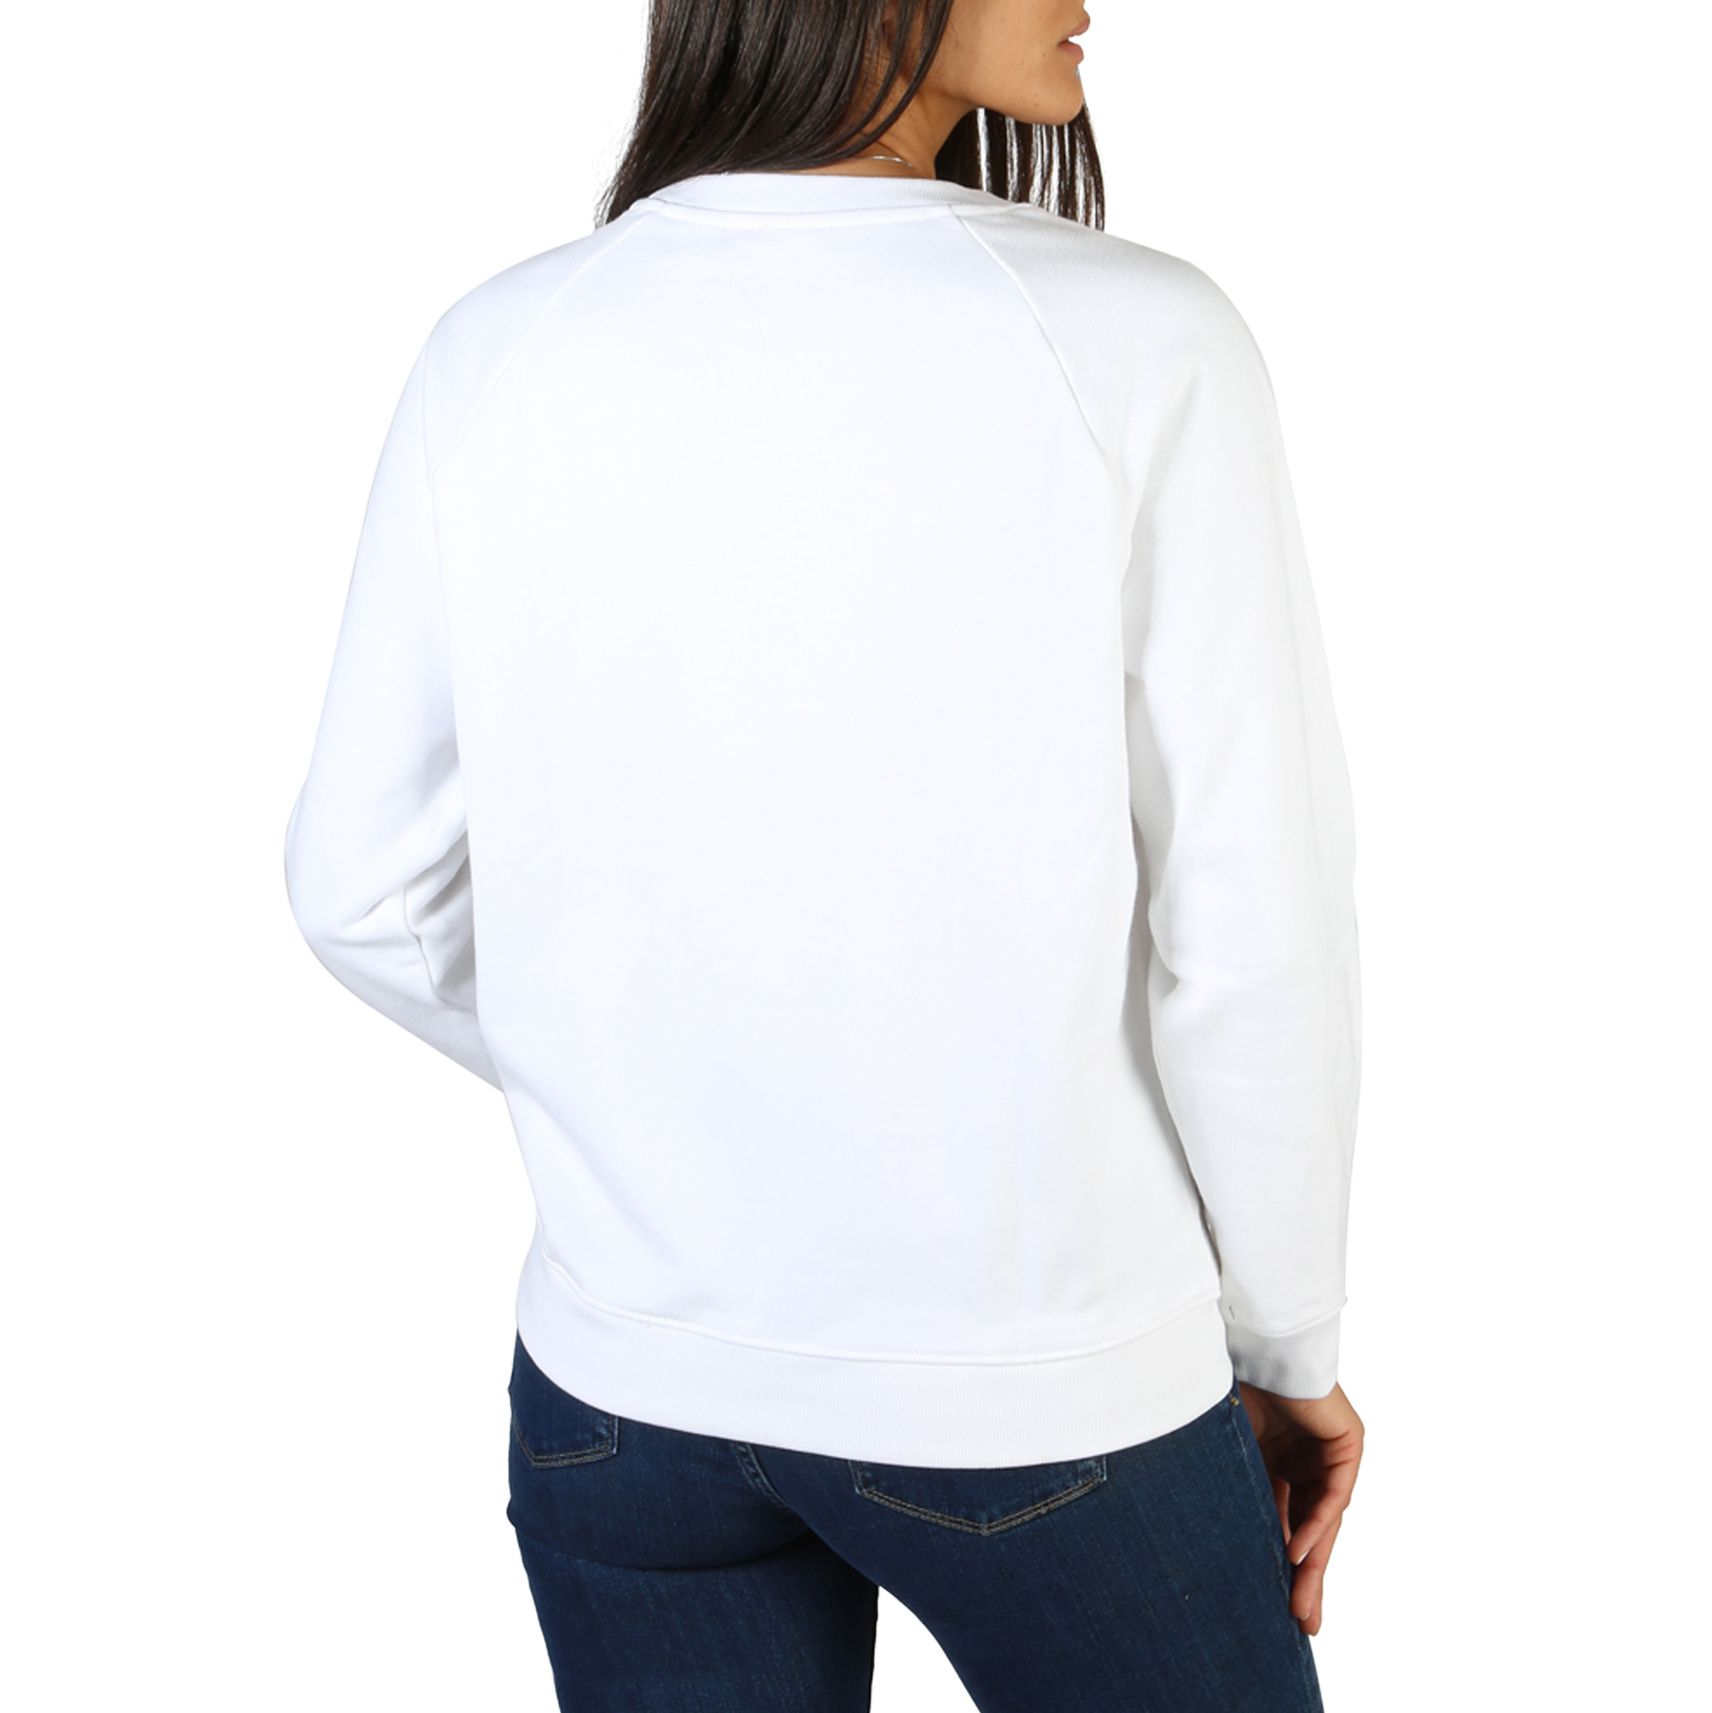 Levi's – 29717_RELAXED-GRAPHIC – Blanco